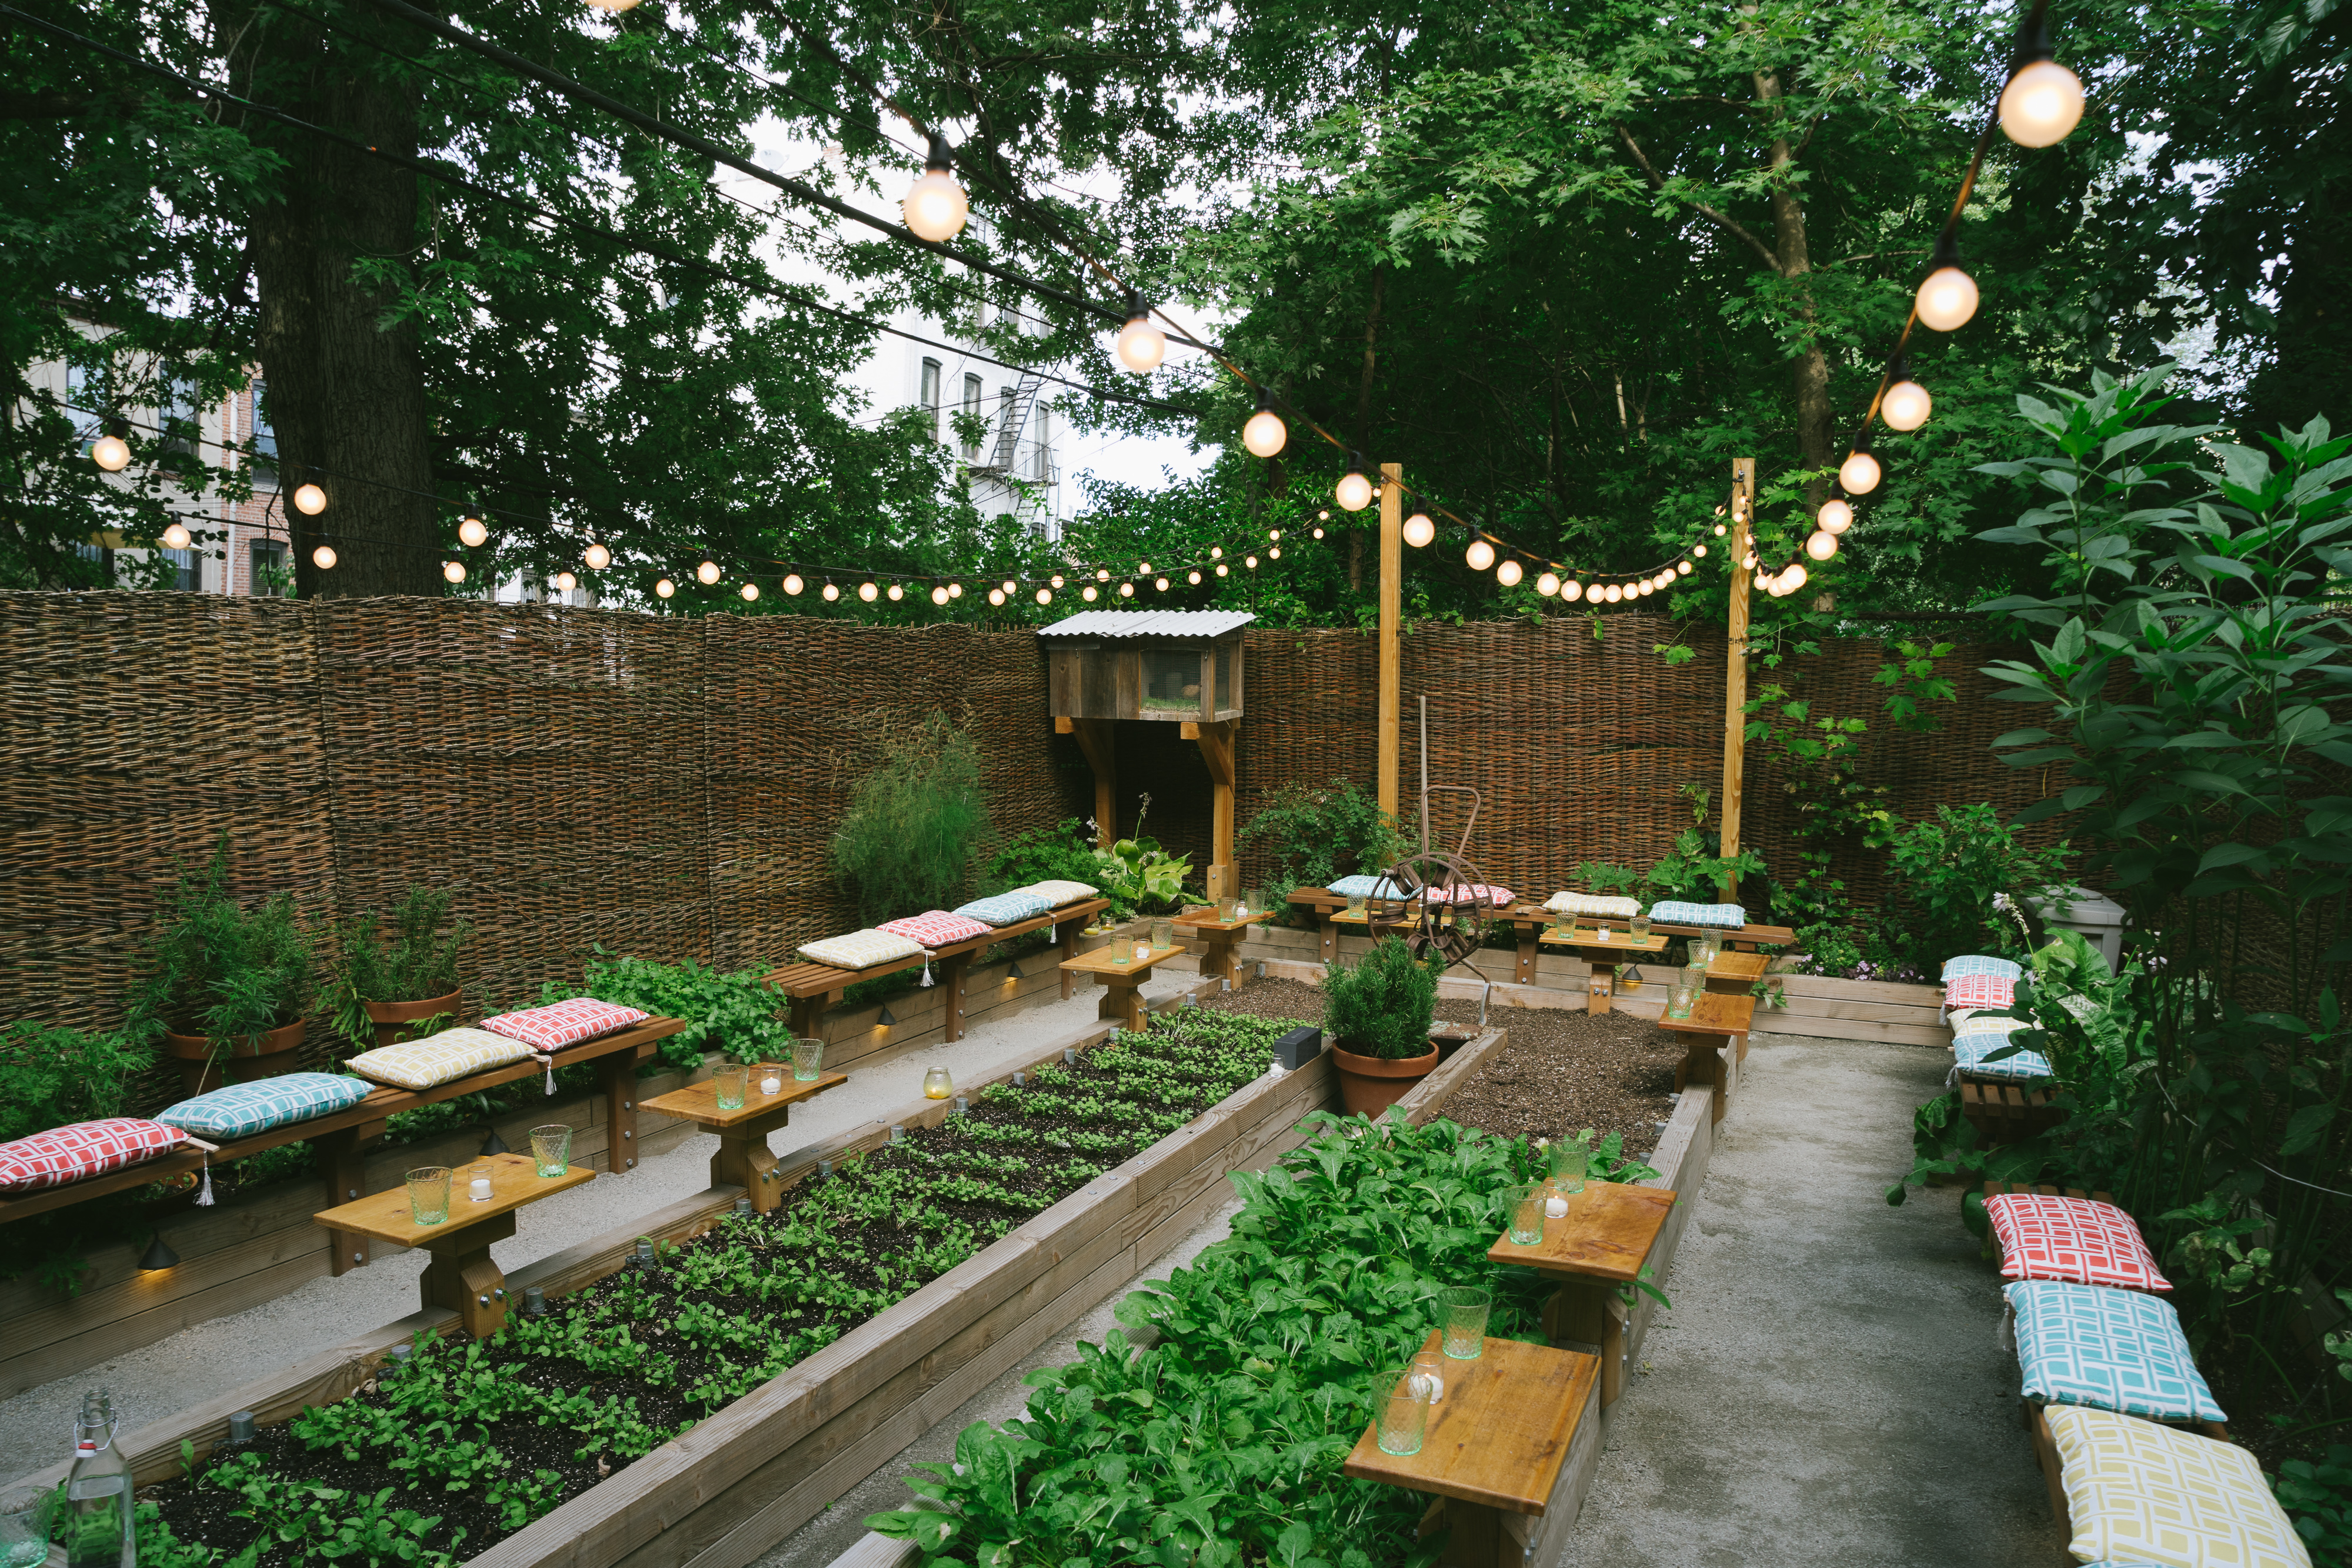 28 Places For Date Night Outside - New York - The Infatuation